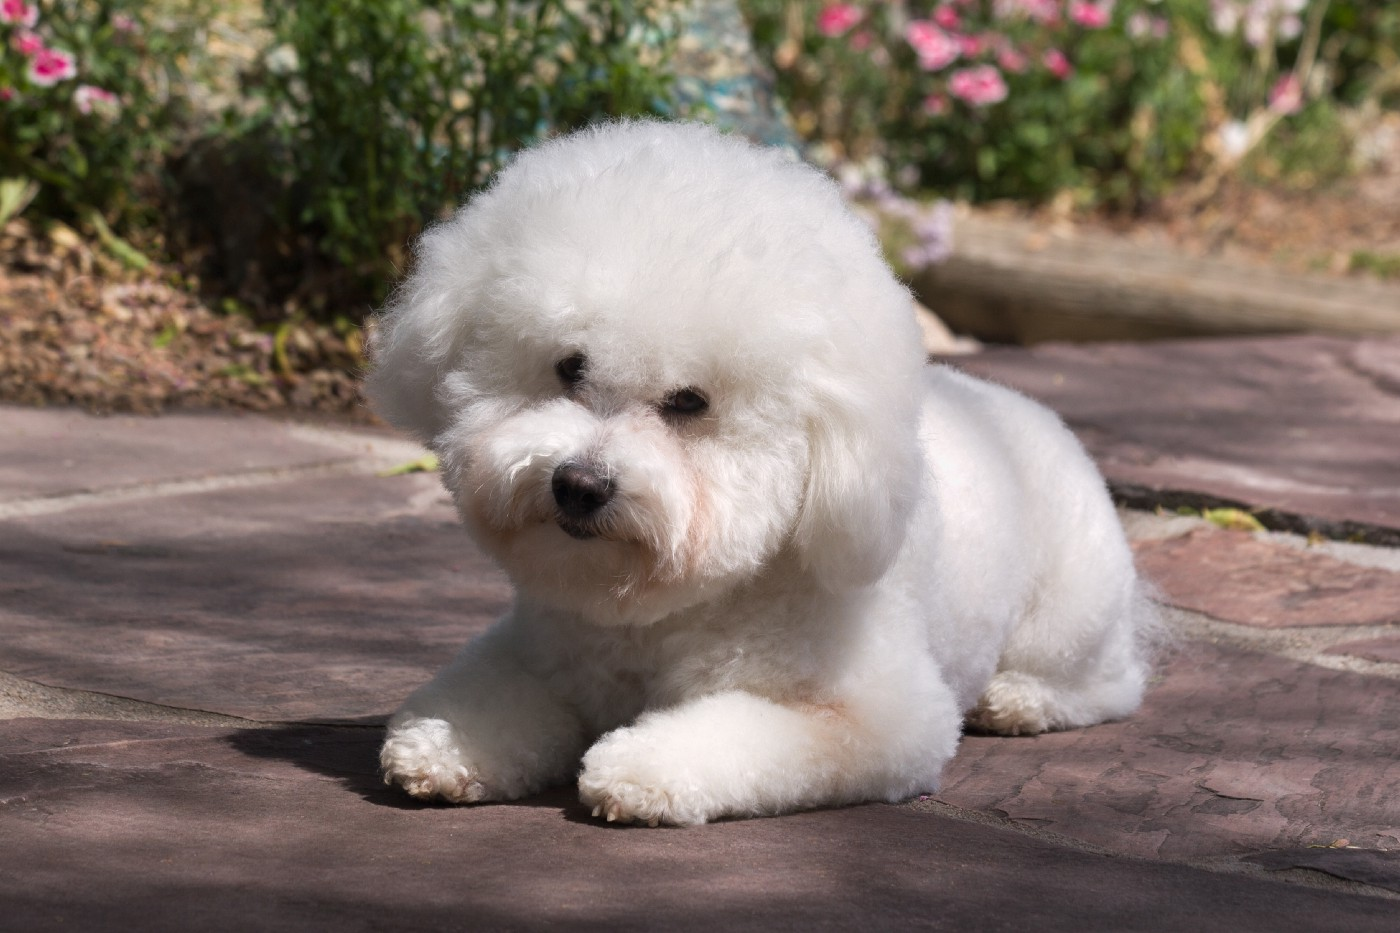 A Bichon Frise dog lying on pathway